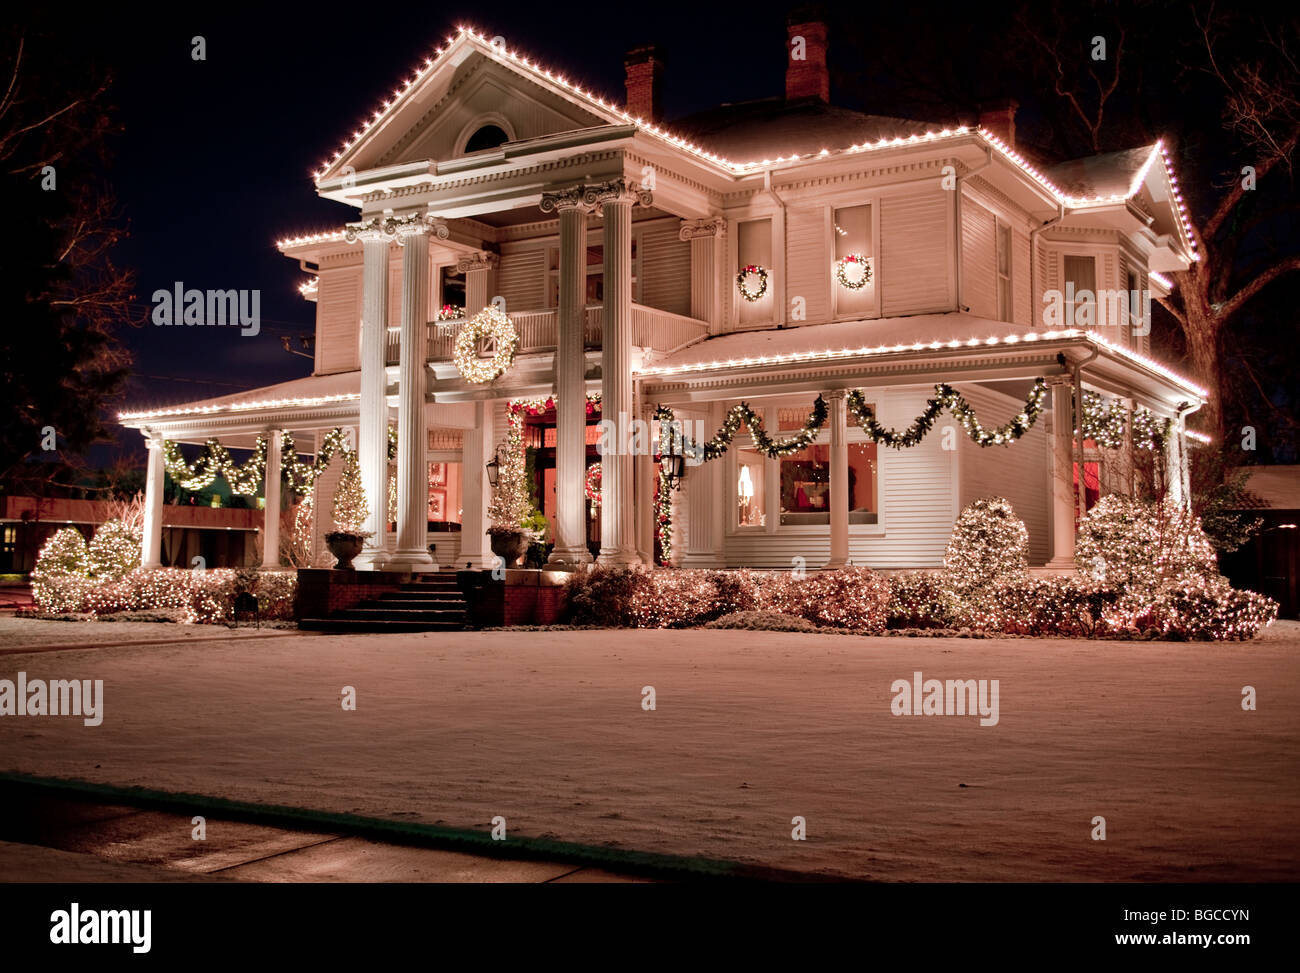 christmas lights decorating a mansion on historic swiss avenue in dallas texas usa stock - Mansion Christmas Decorations